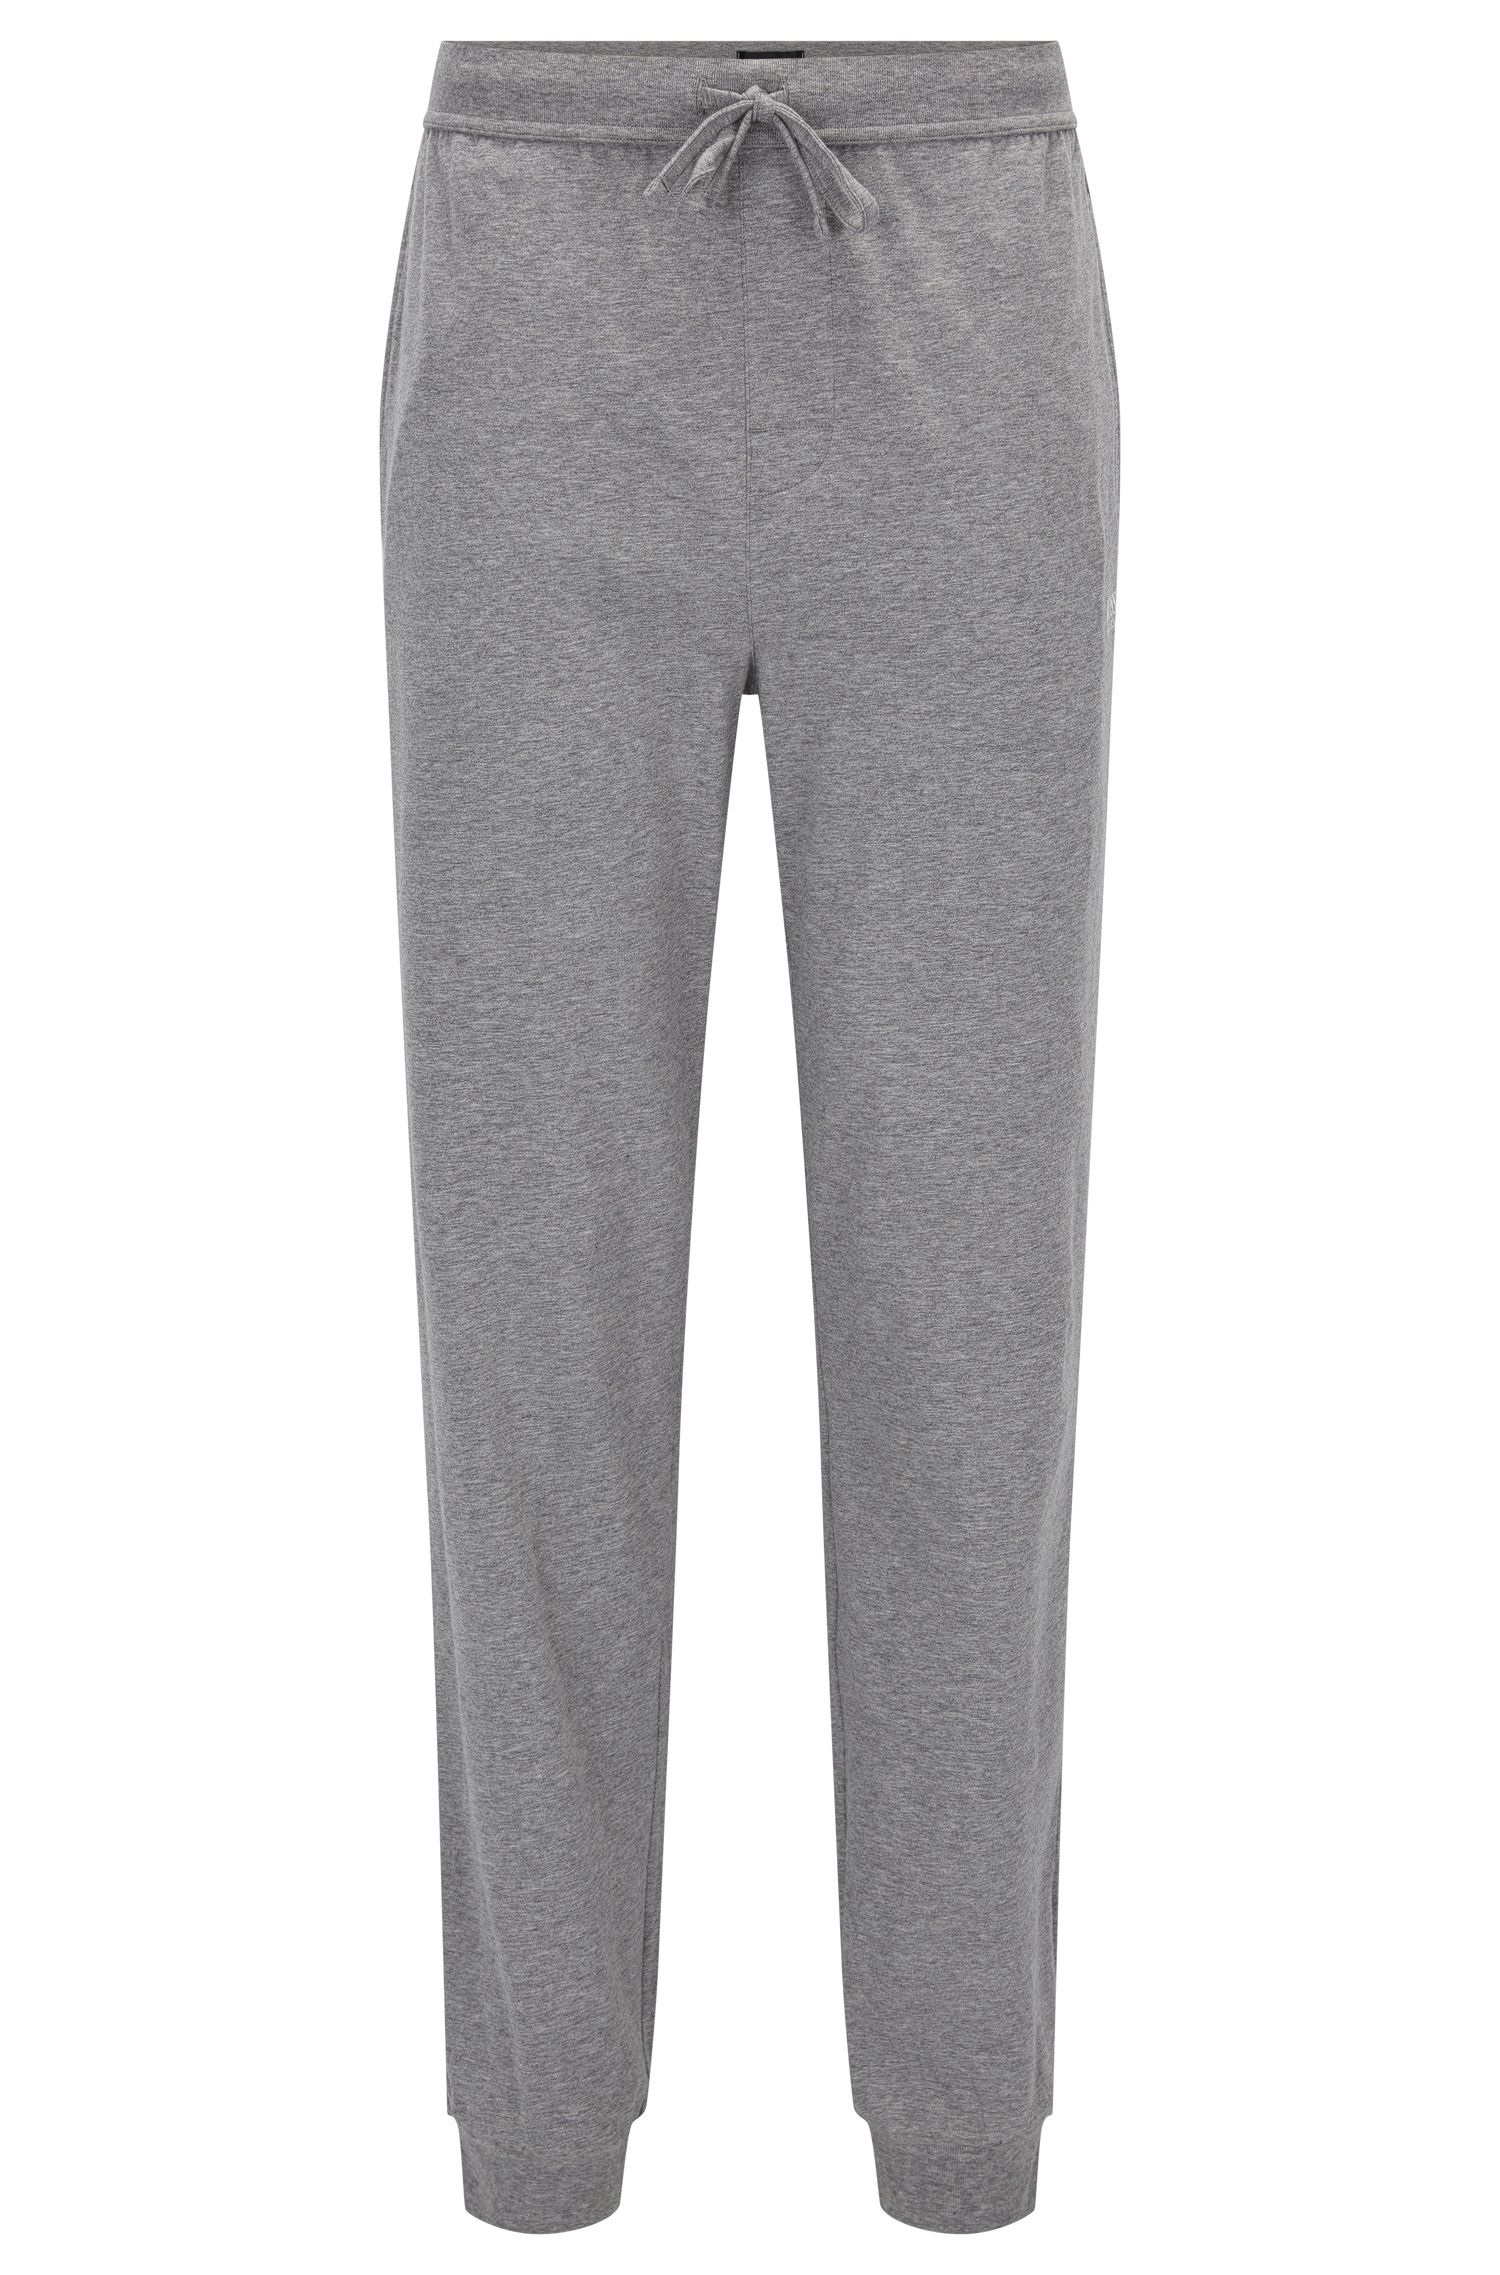 Drawstring loungewear bottoms in single jersey